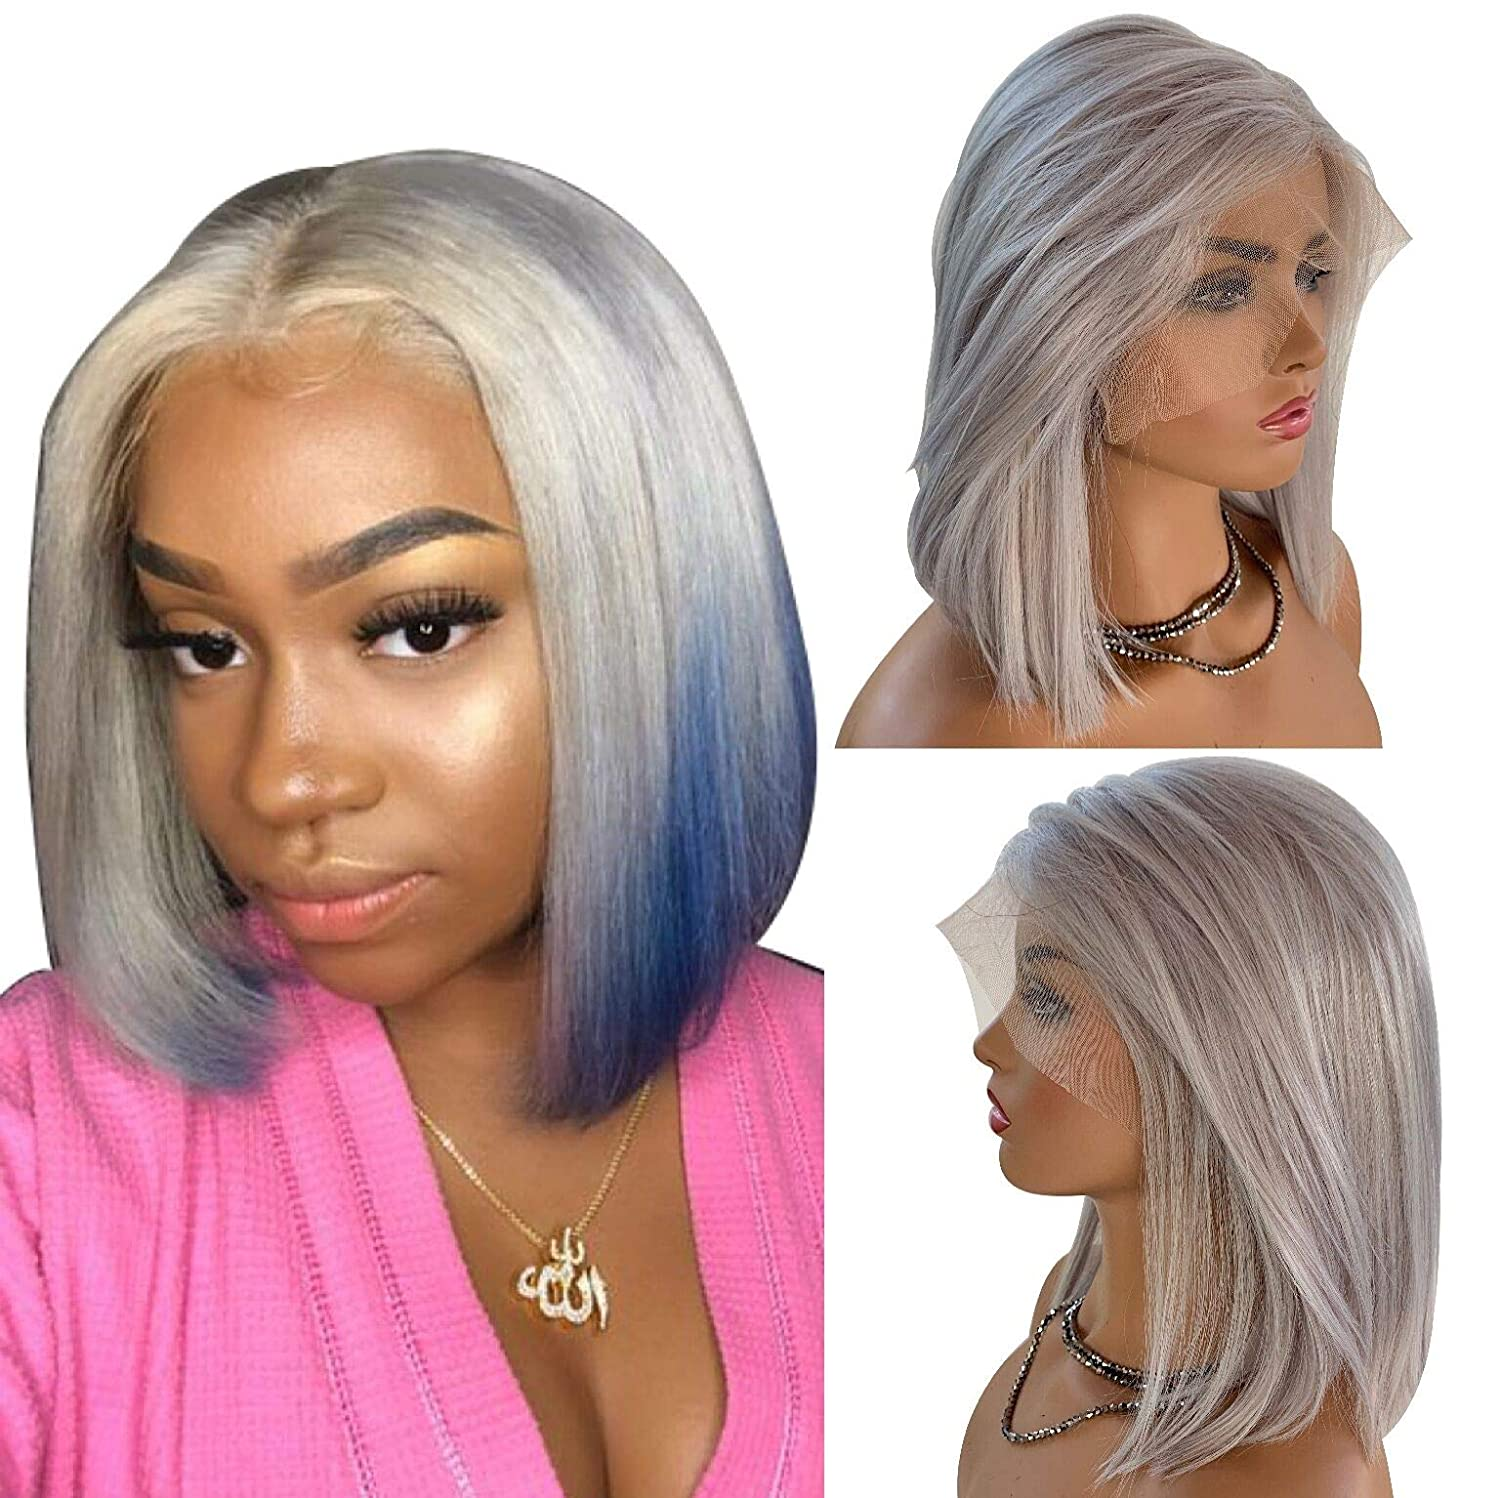 Grey Lace Frontal Wigs 10 inch Human Hair Glueless Wig 13x6 Deeper Hairline Pre Plucked with Baby Hair Bleached Knots Flat End Bob Cut 150% Density Thick and Bouncy for Women